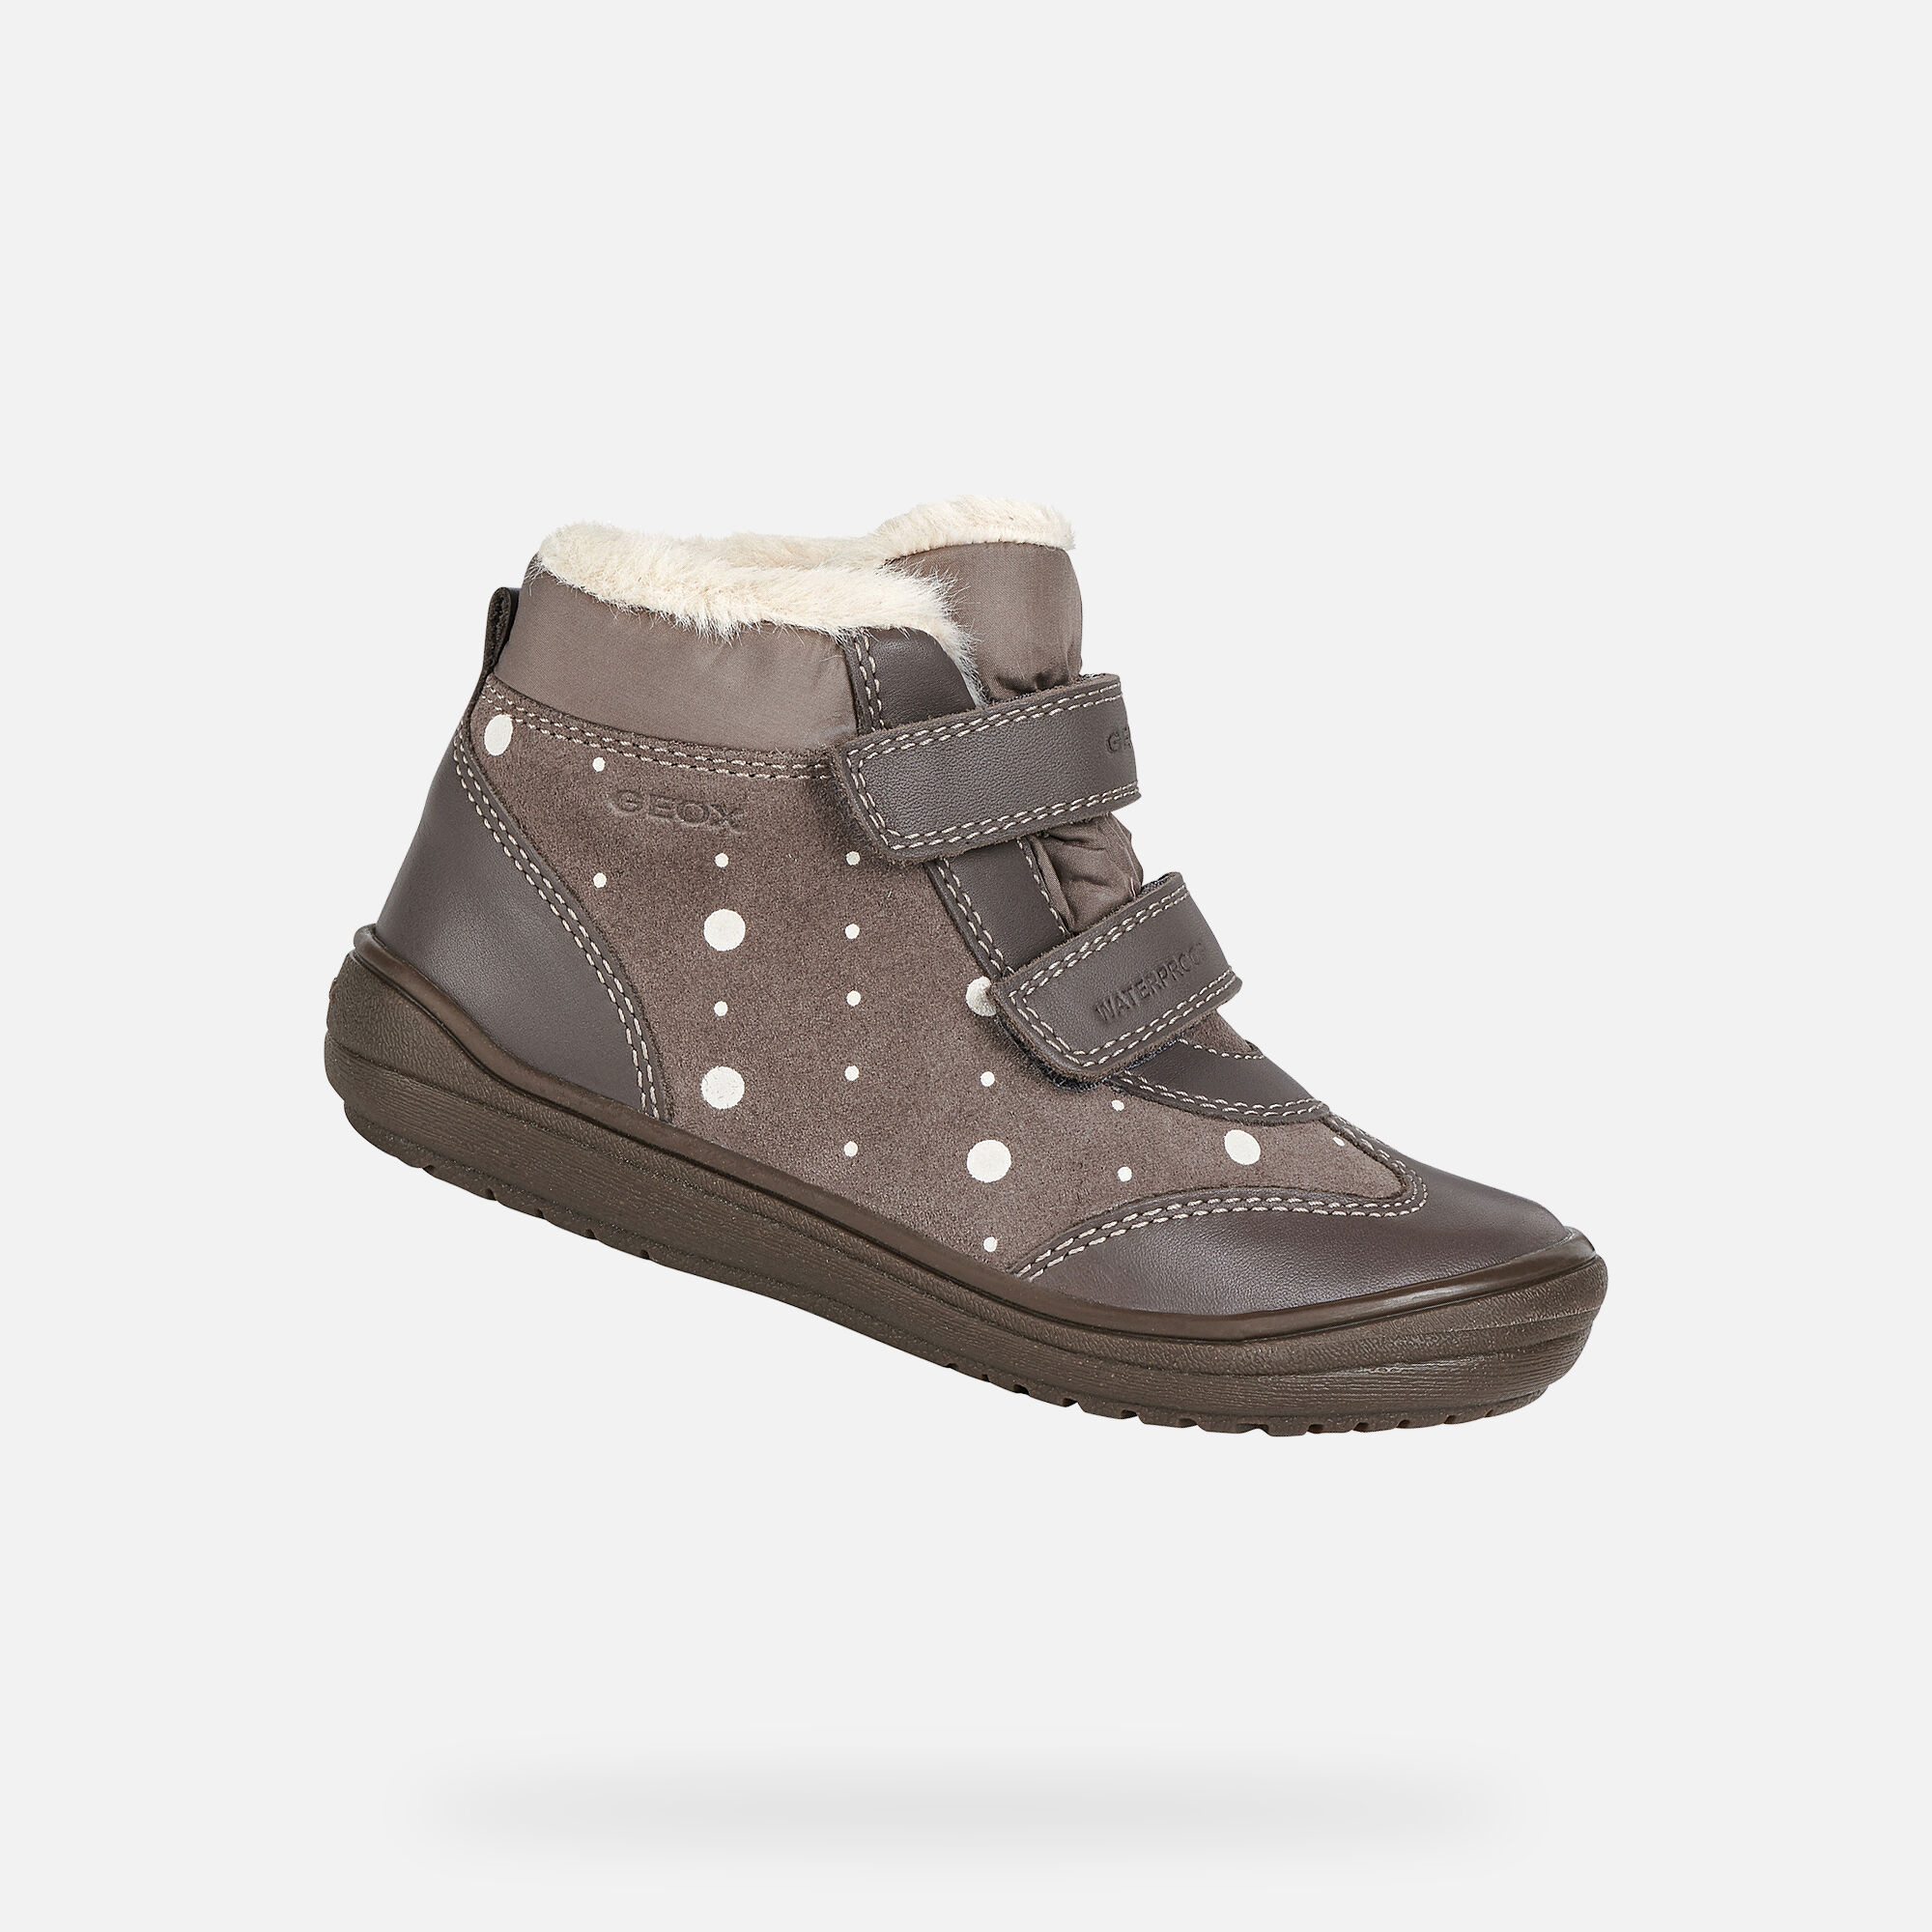 HADRIEL WPF GIRL - SNEAKERS from girls